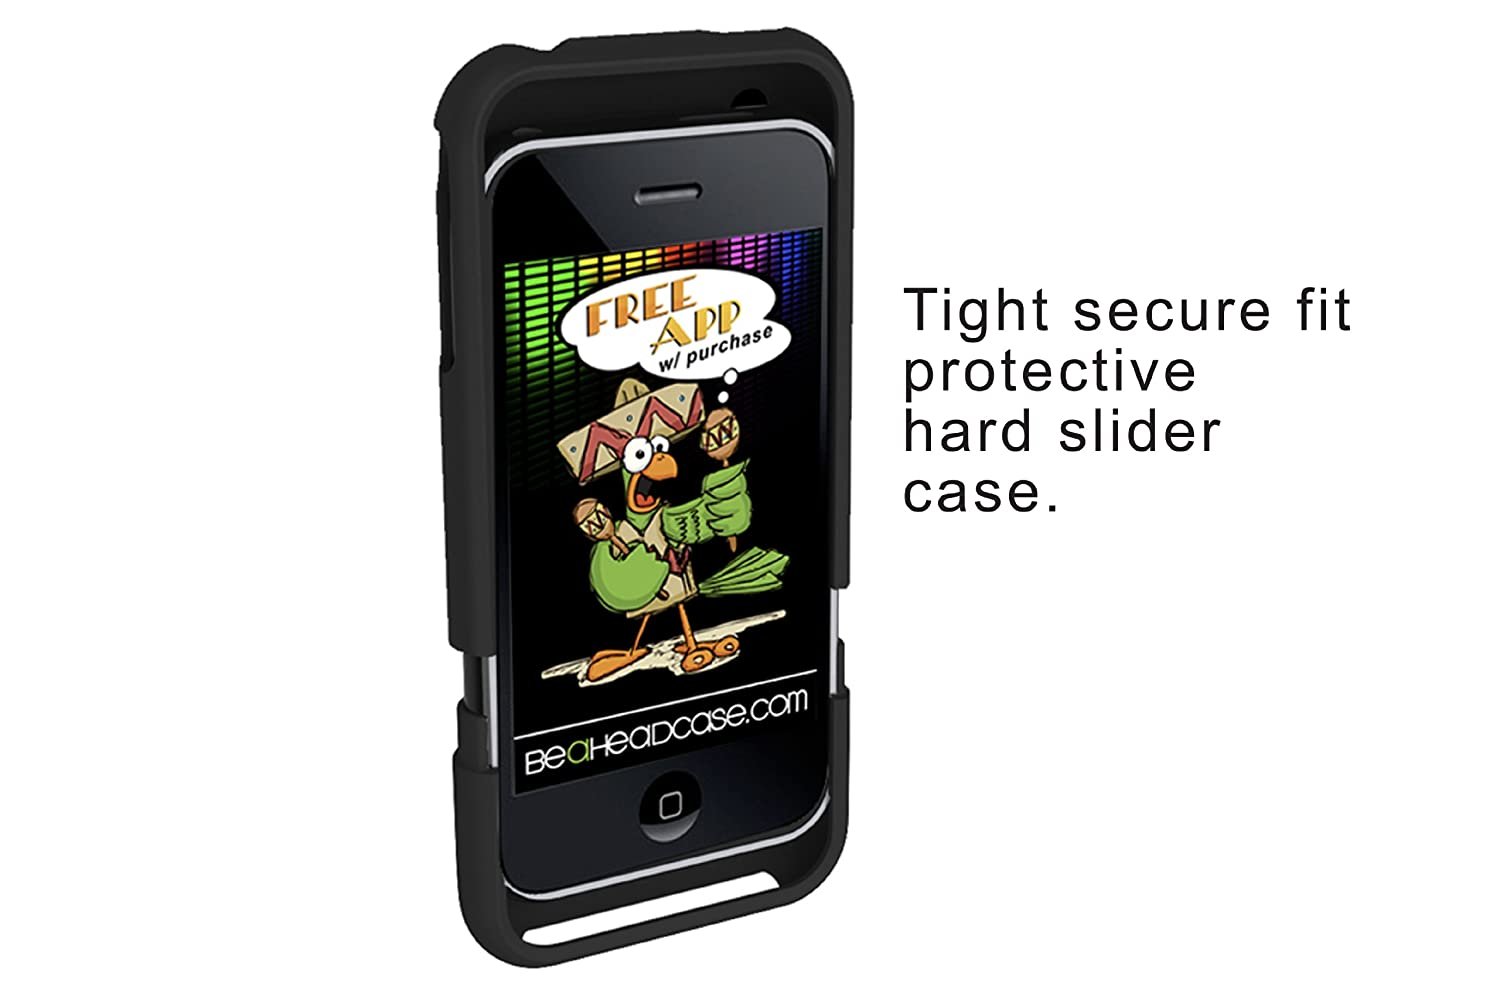 Bottle Opener Phone Case for iPhone 3G/3GS - Black- Free App with Purchase